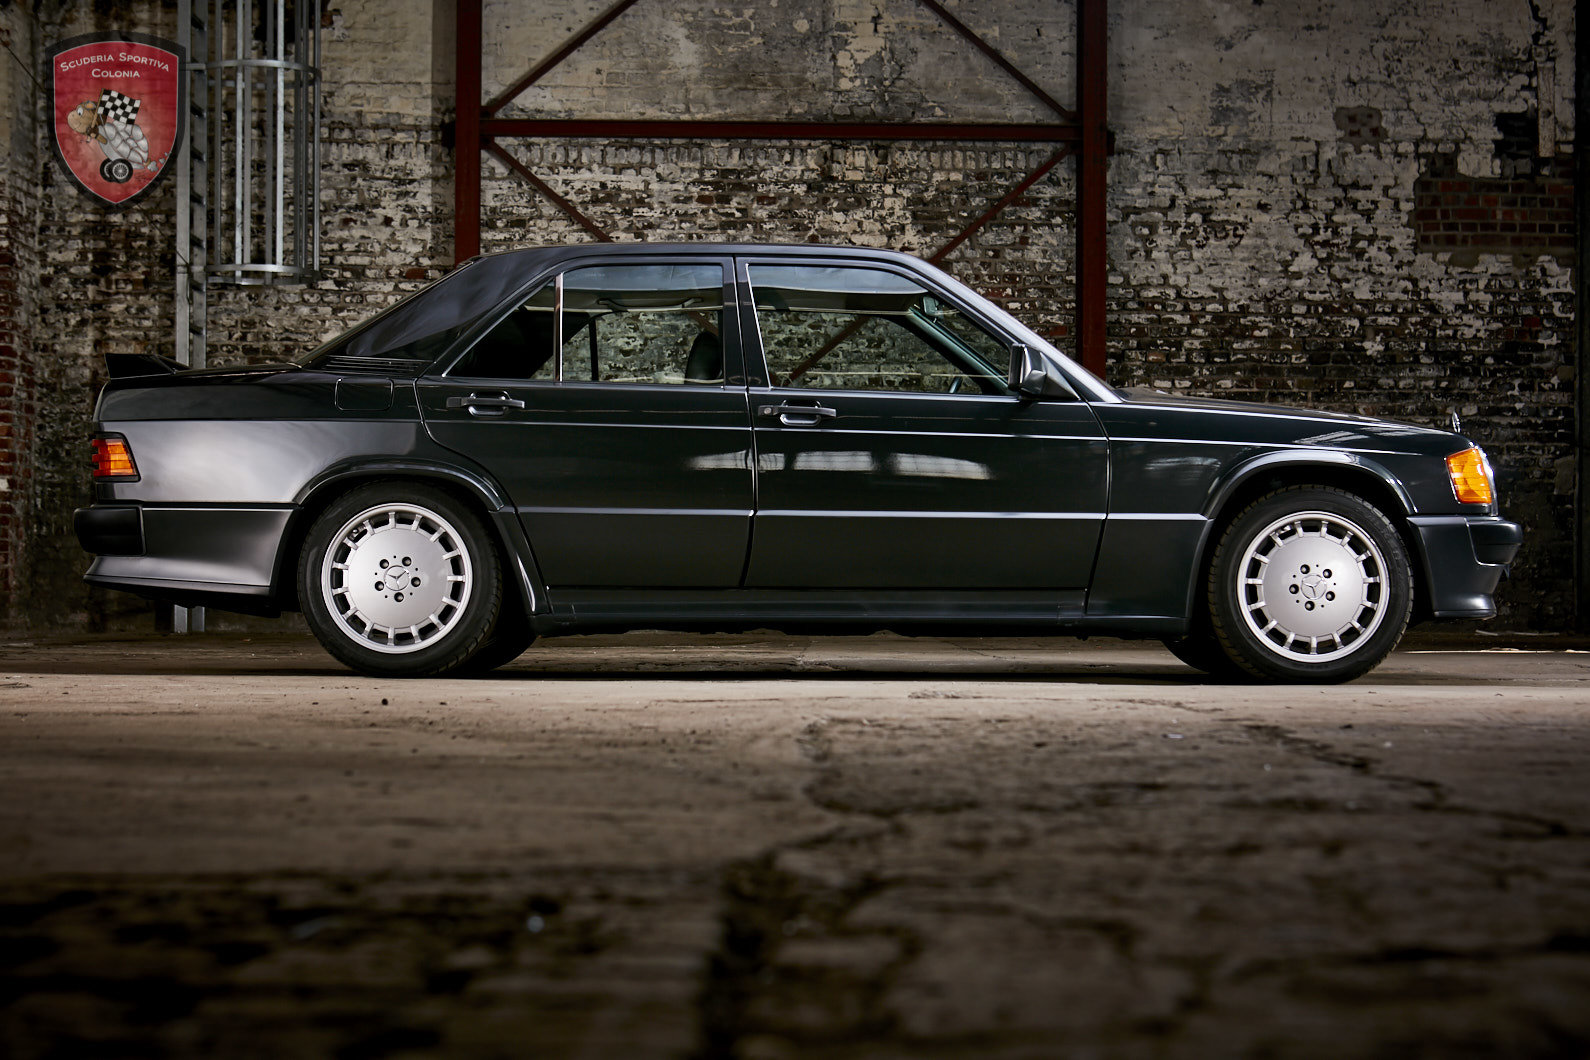 1990 Mercedes Benz 190 E  2.5   16 V For Sale (picture 5 of 12)